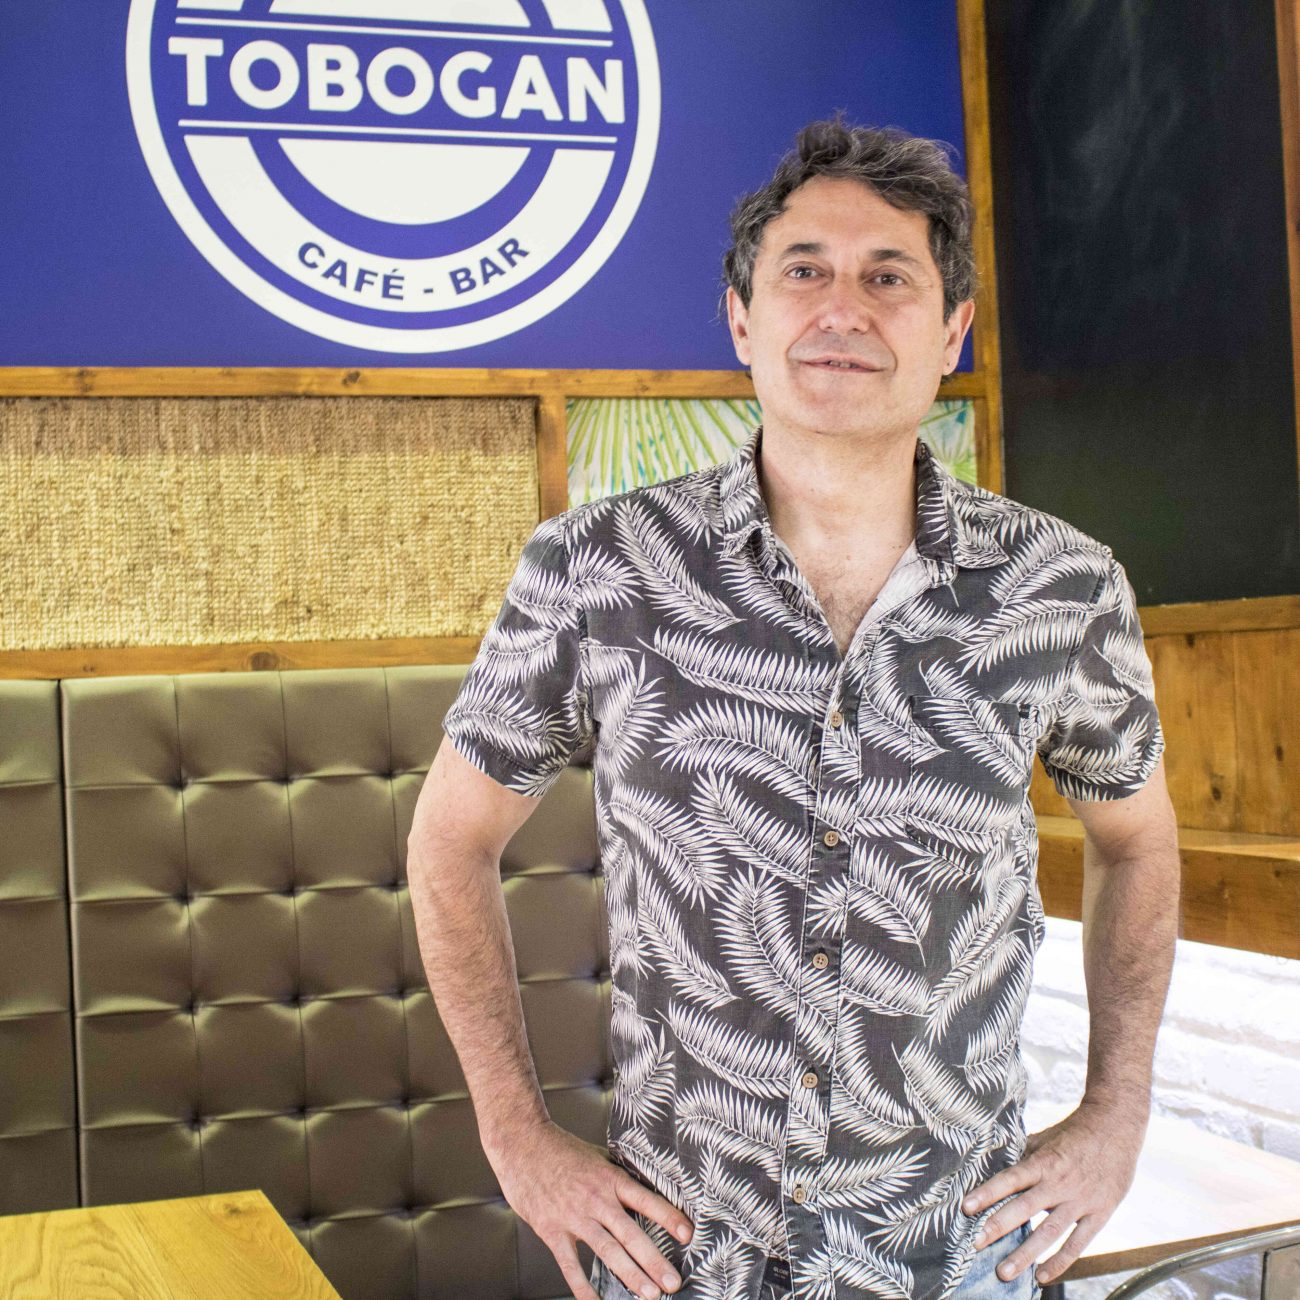 BAR TOBOGAN